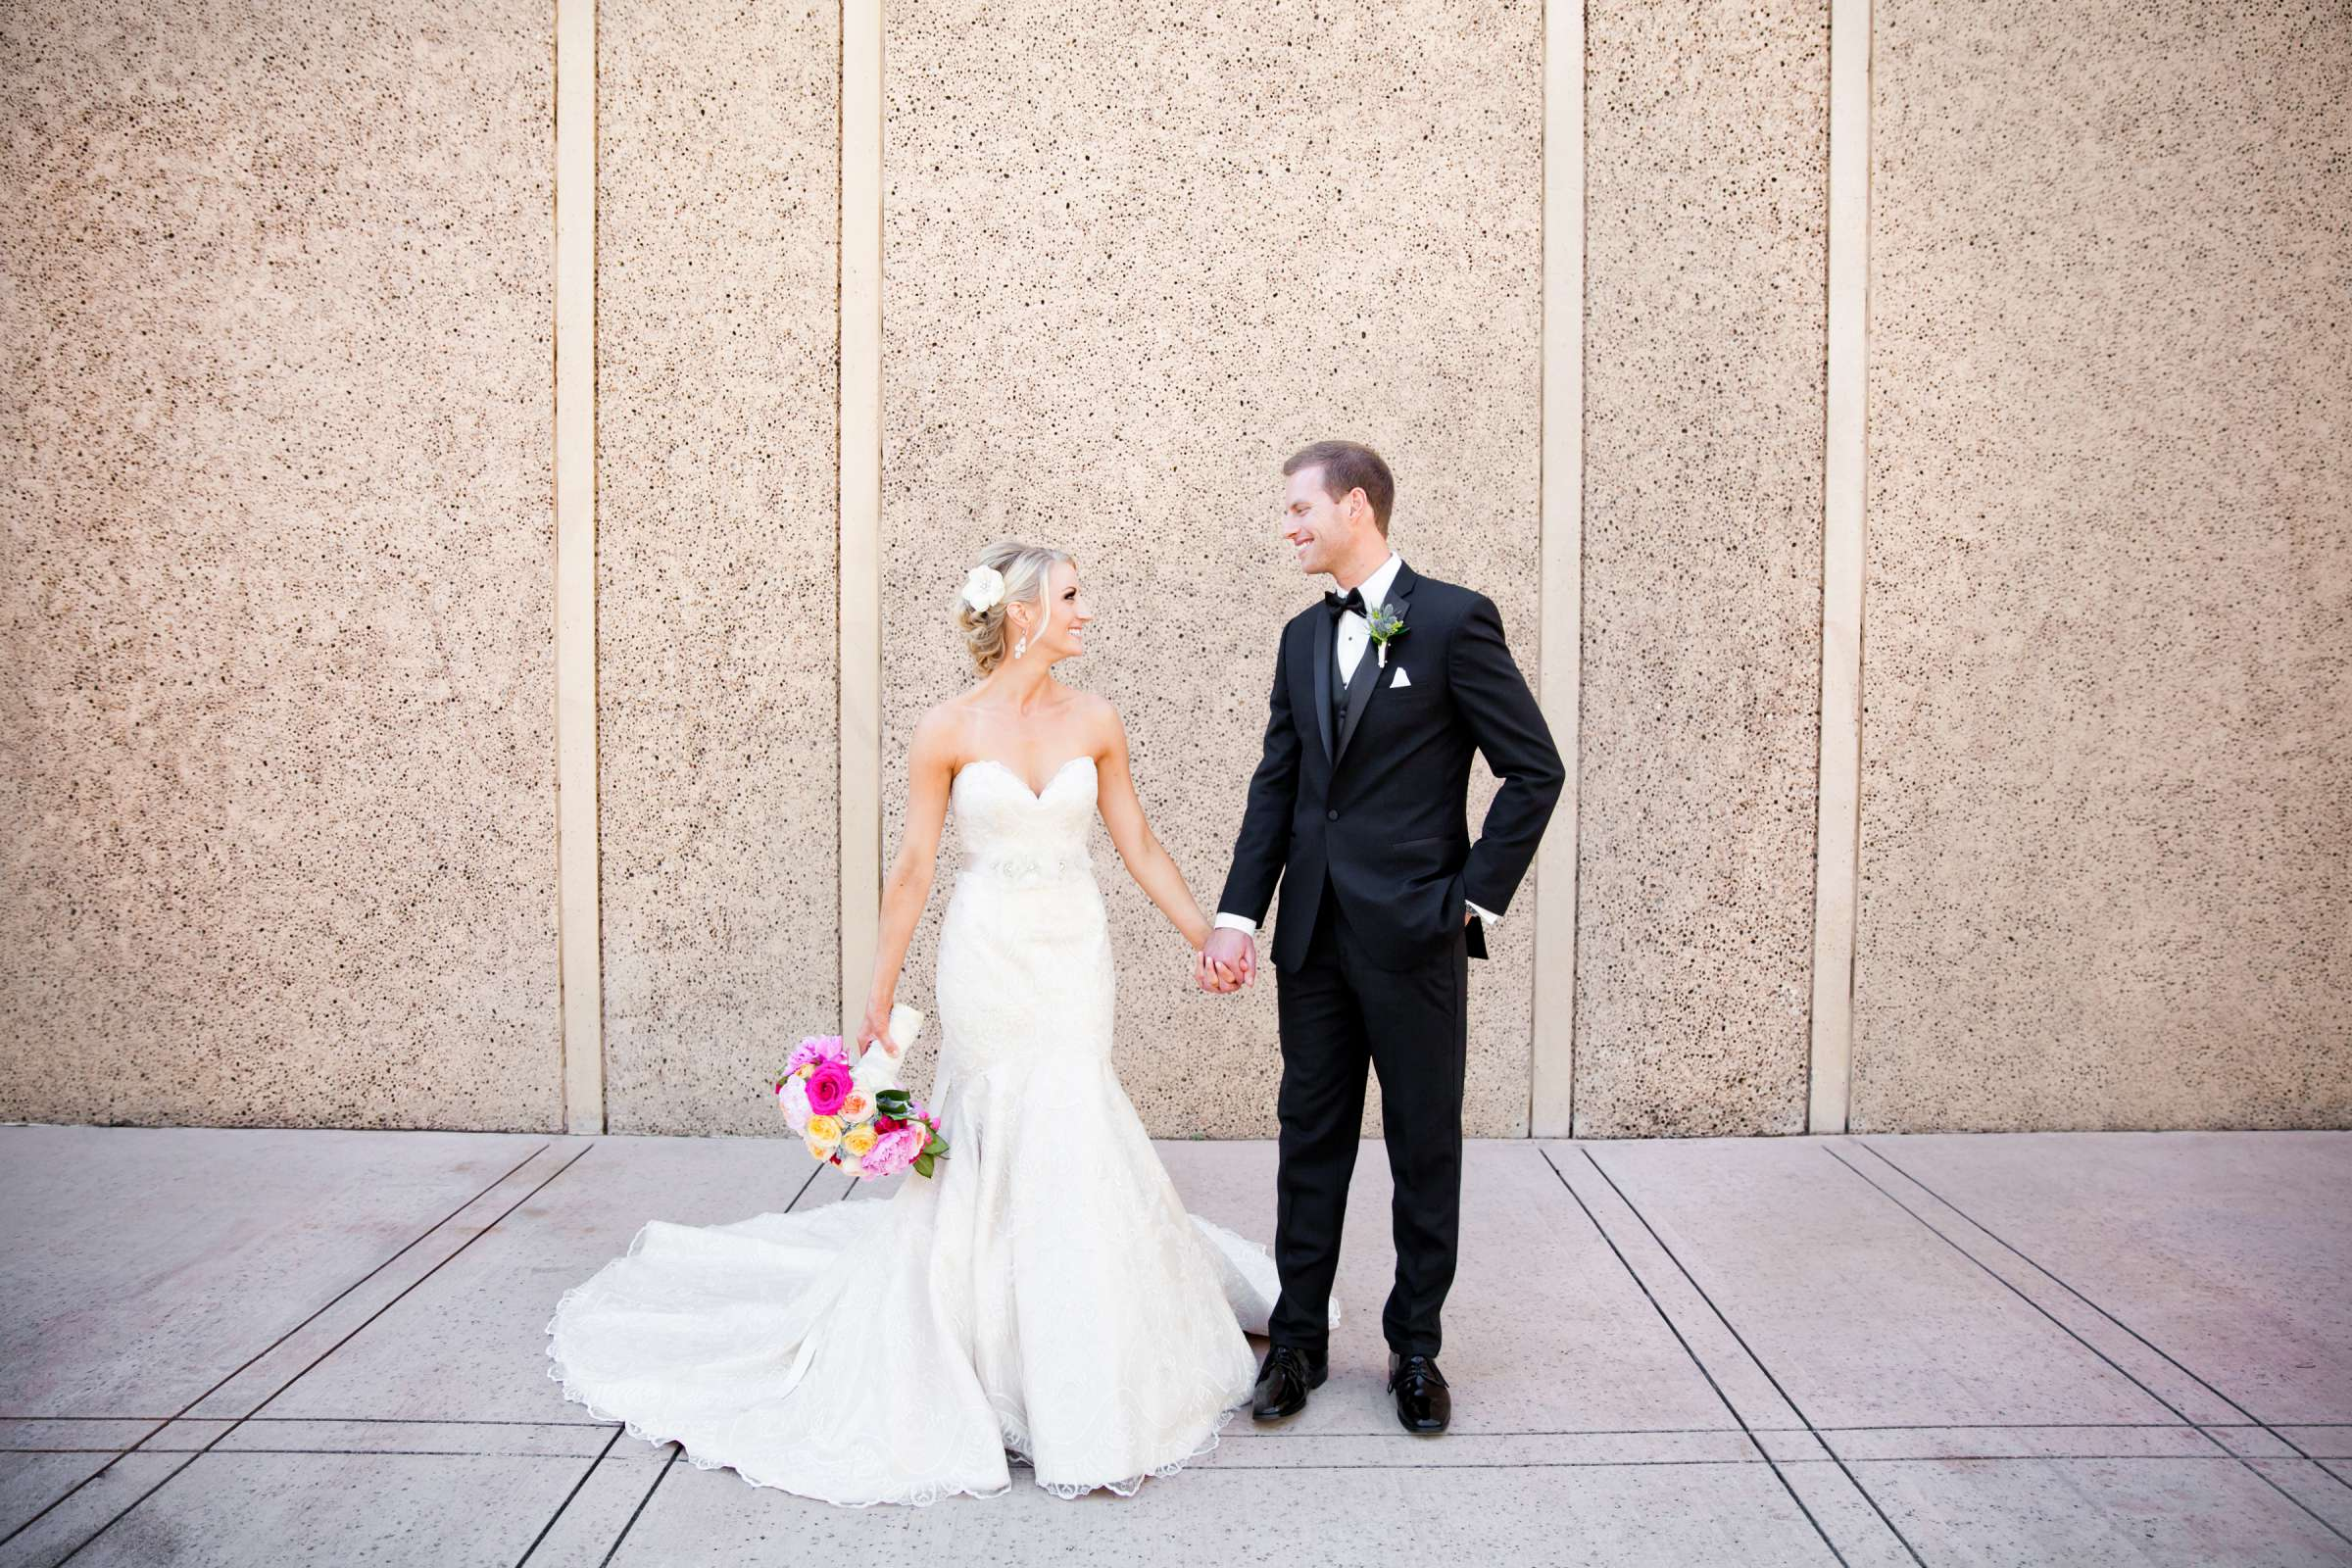 Lisa and Kyle | San Diego Photographer - True Photography